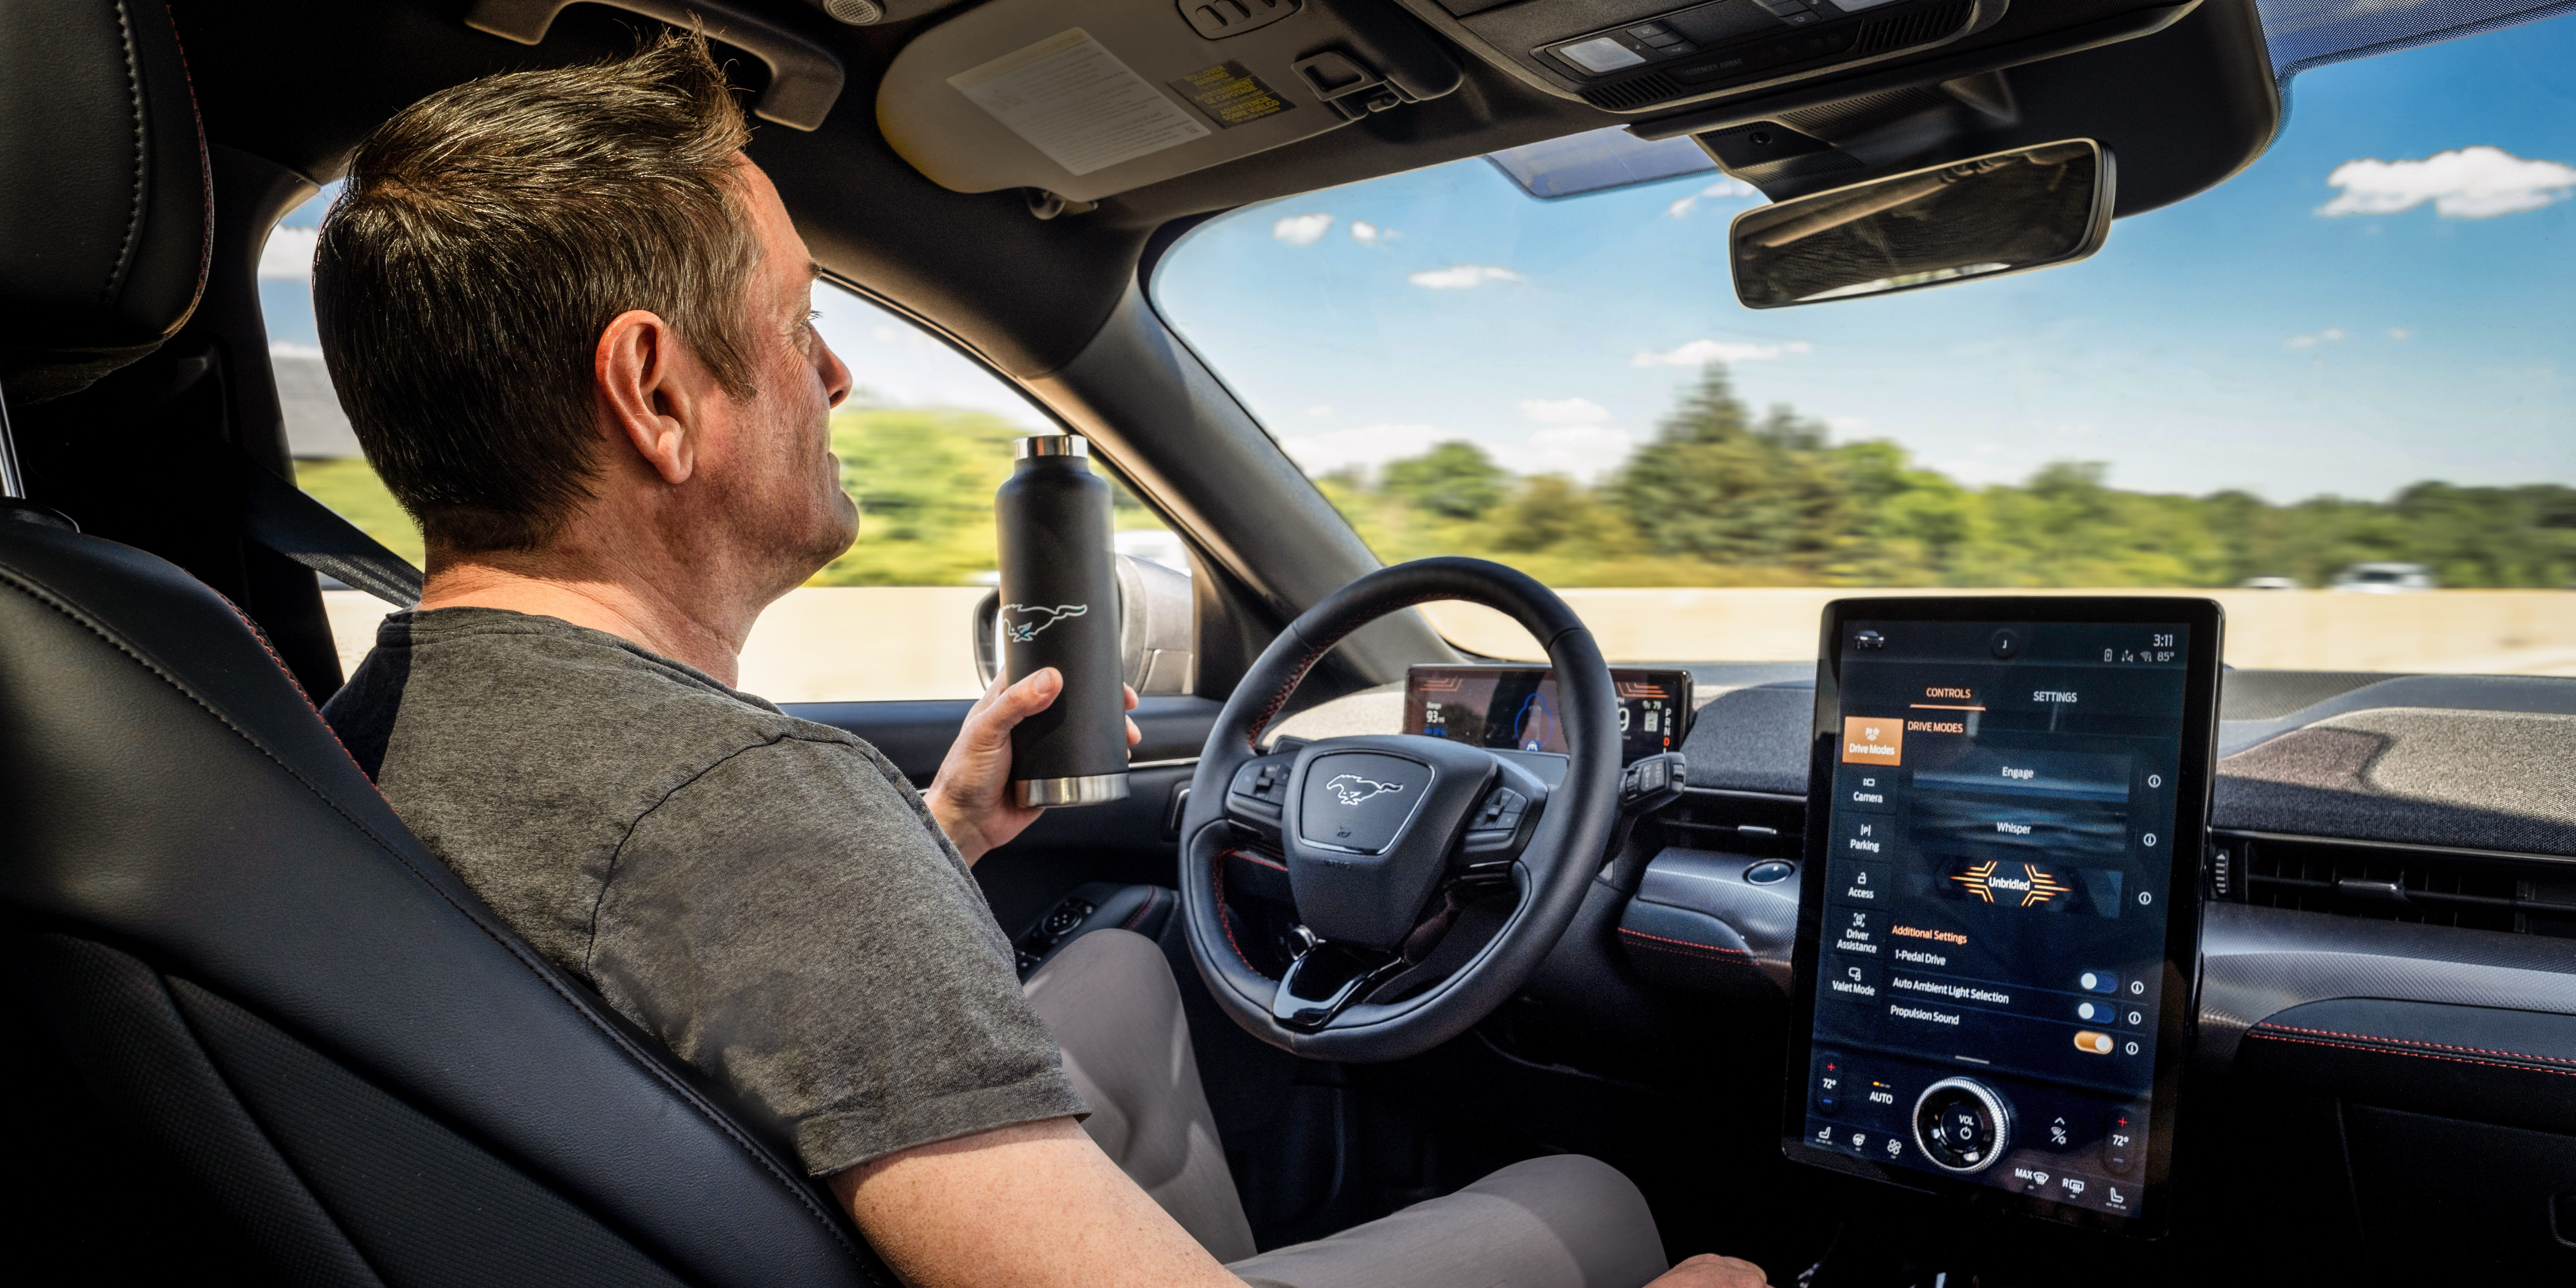 Ford releases more details about Mustang Mach-E's level 3 hands-free autonomous driving capability - Electrek